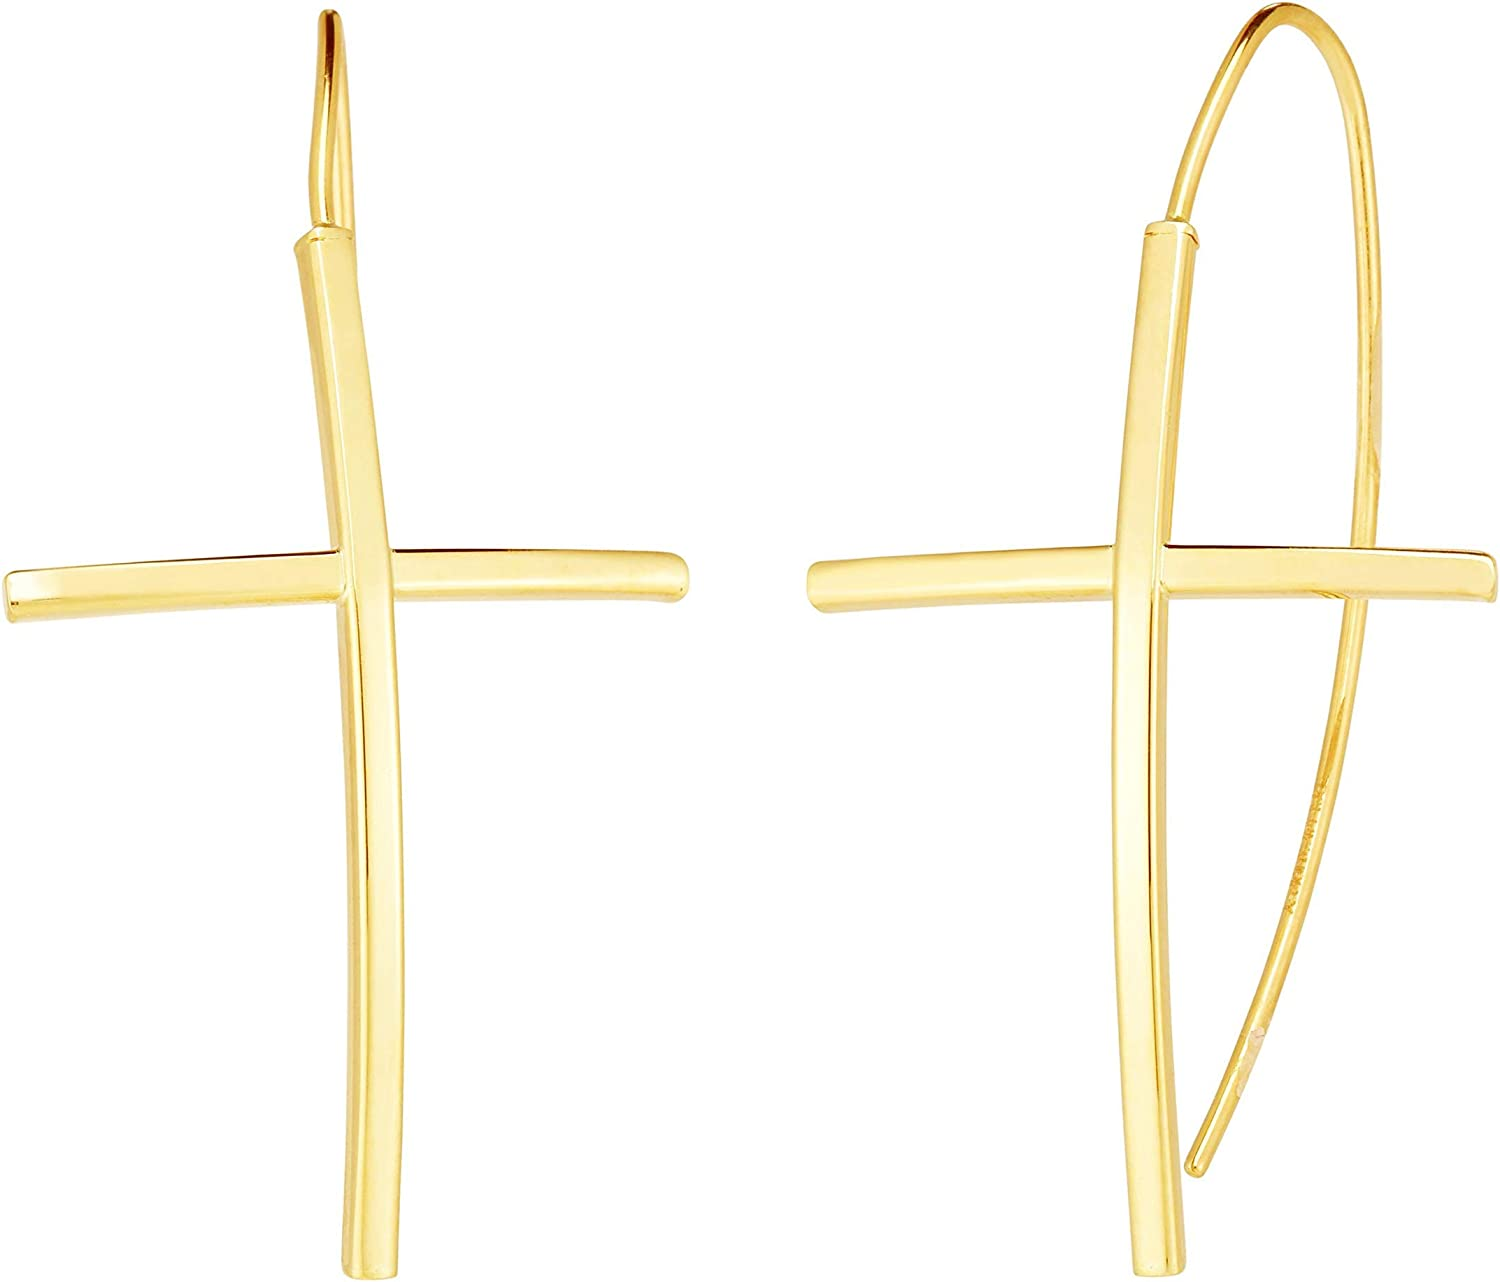 14K Yellow Gold Cross Slide Earrings Excellent Clasp Fashionable with